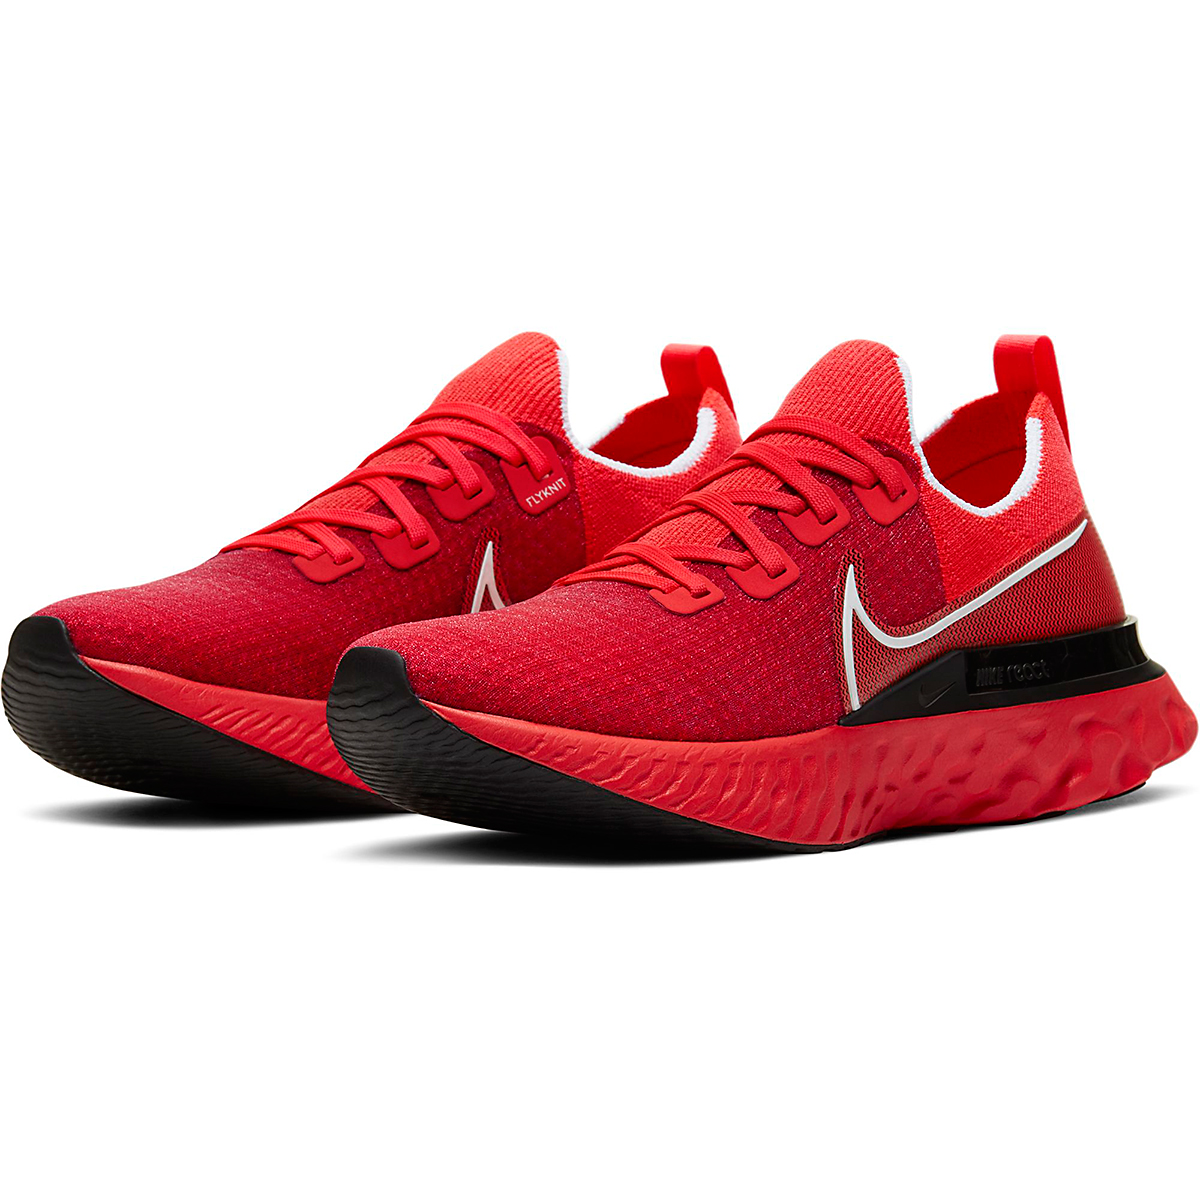 Men's Nike React Infinity Run Flyknit Running Shoe - Color: Bright Crimson - Size: 6 - Width: Regular, Bright Crimson, large, image 4